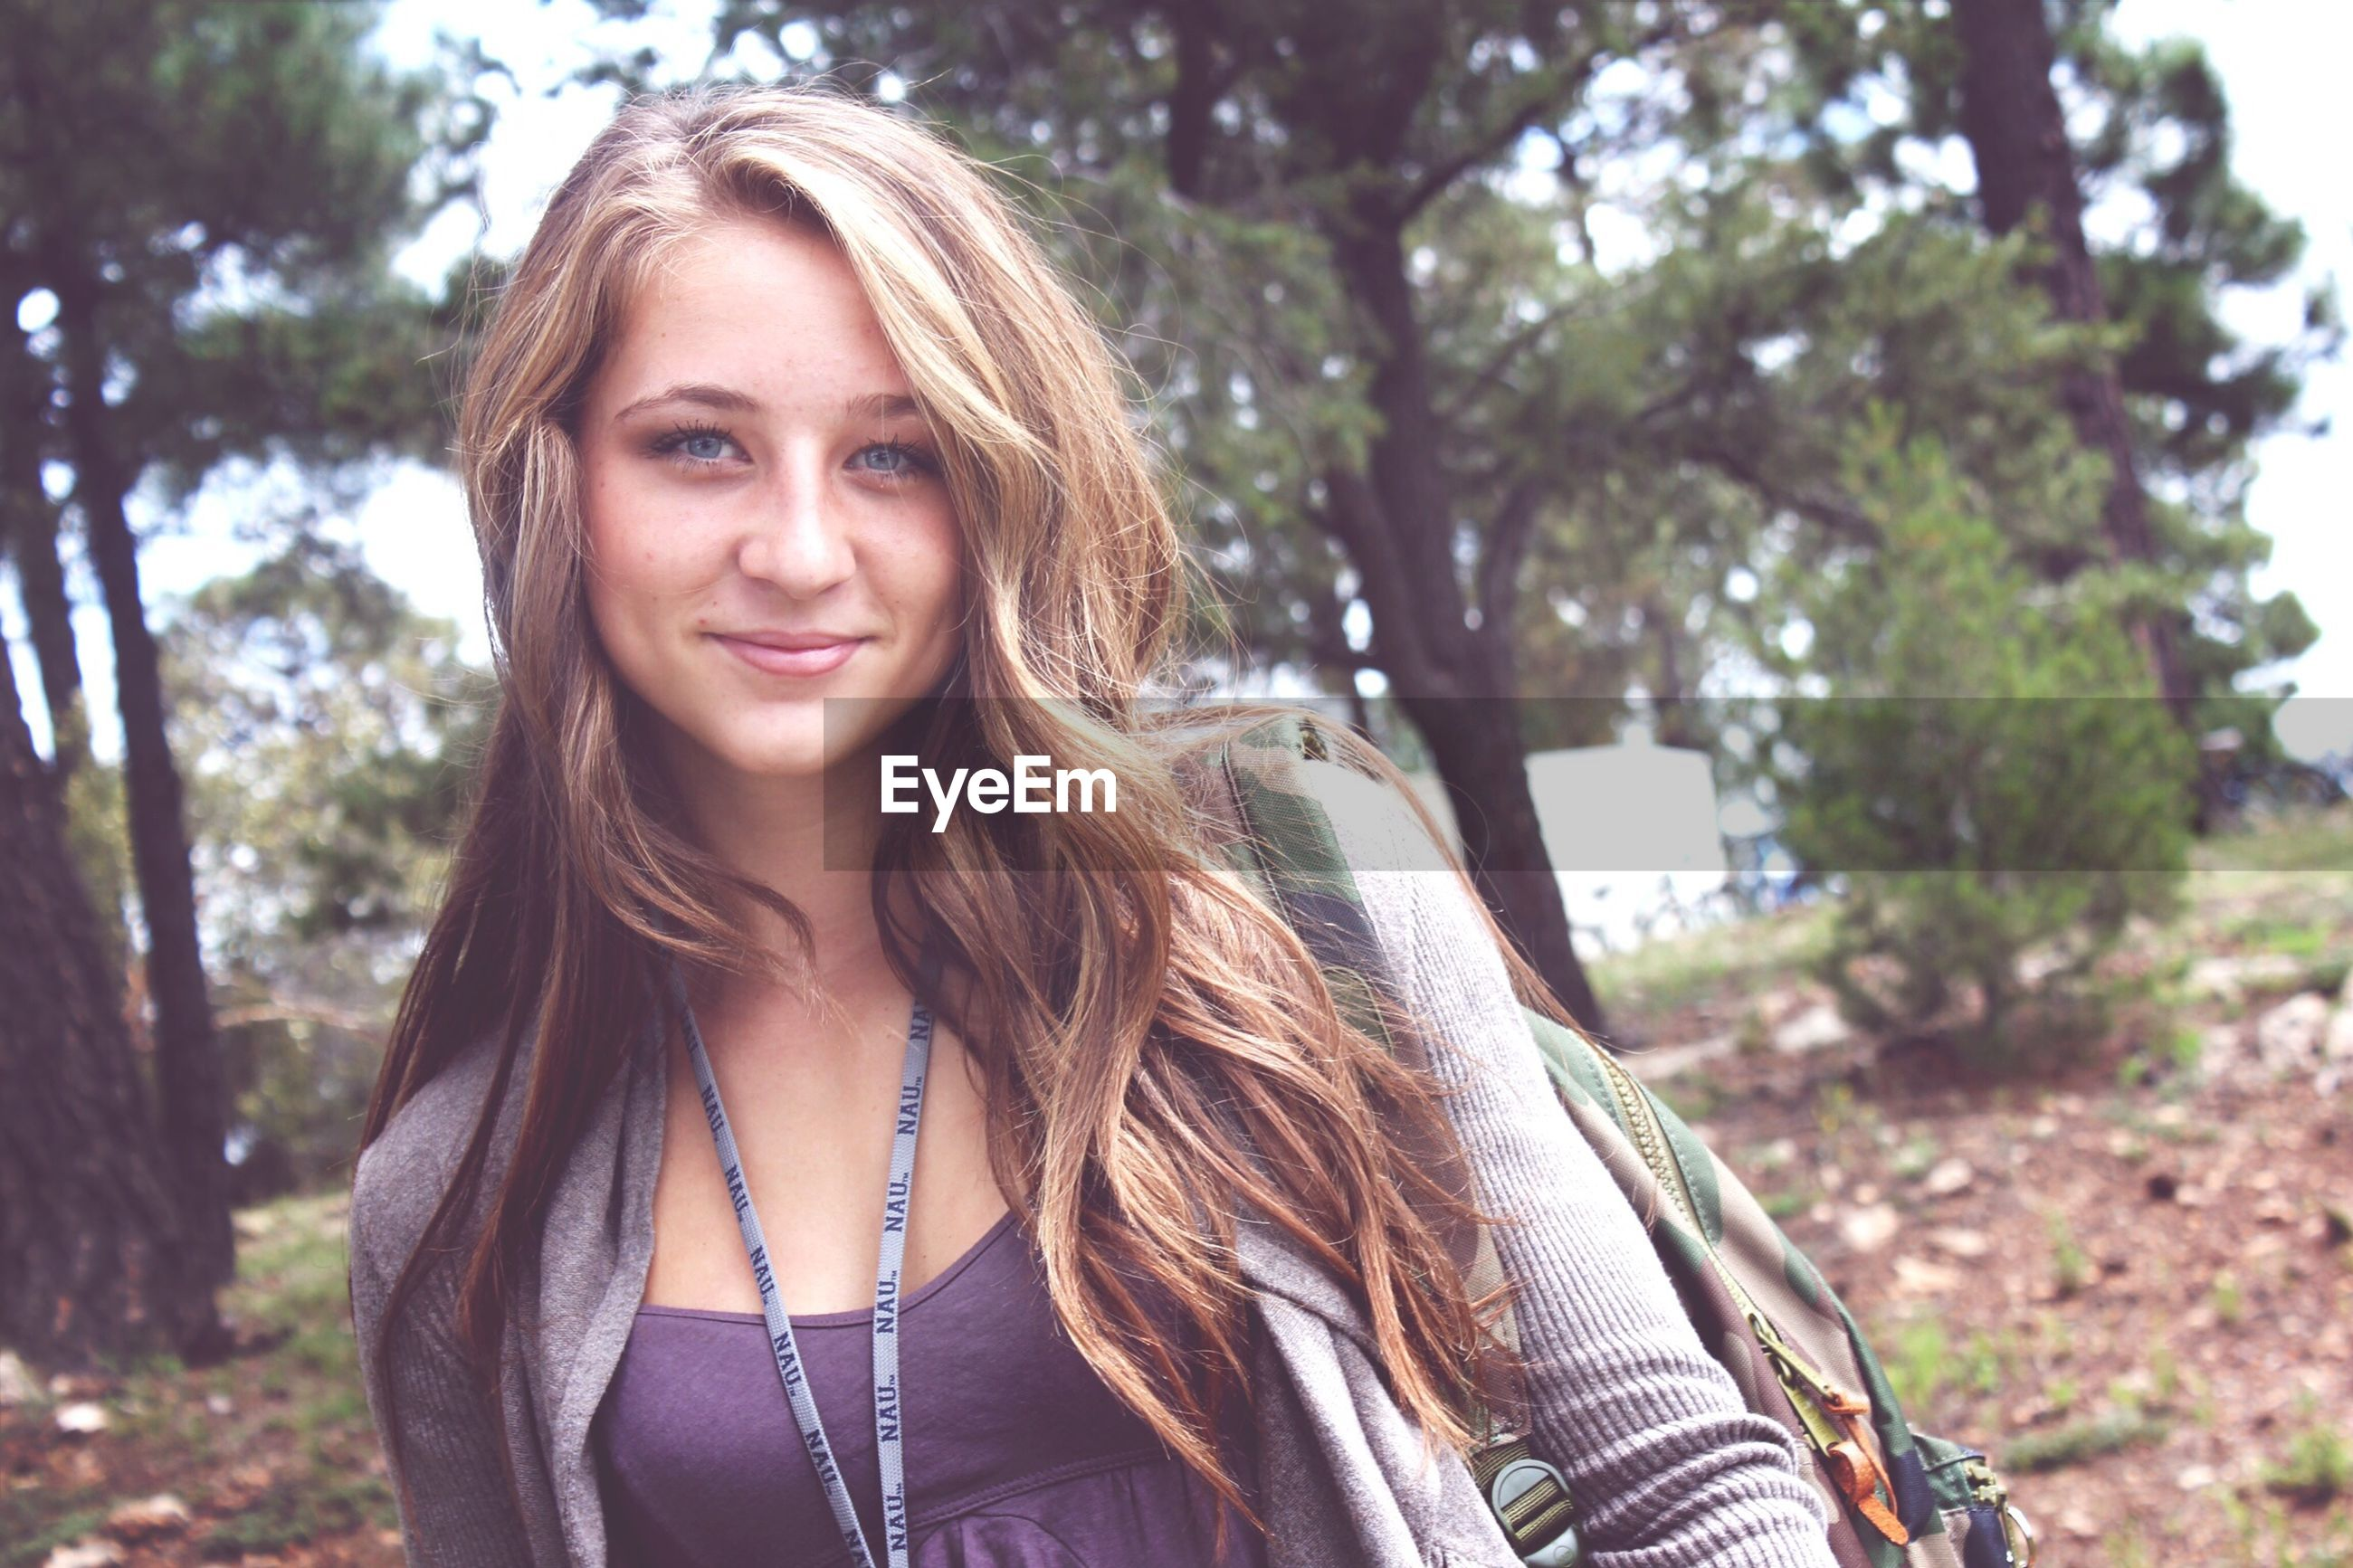 portrait, looking at camera, young adult, person, young women, front view, smiling, lifestyles, tree, leisure activity, long hair, casual clothing, focus on foreground, happiness, toothy smile, headshot, standing